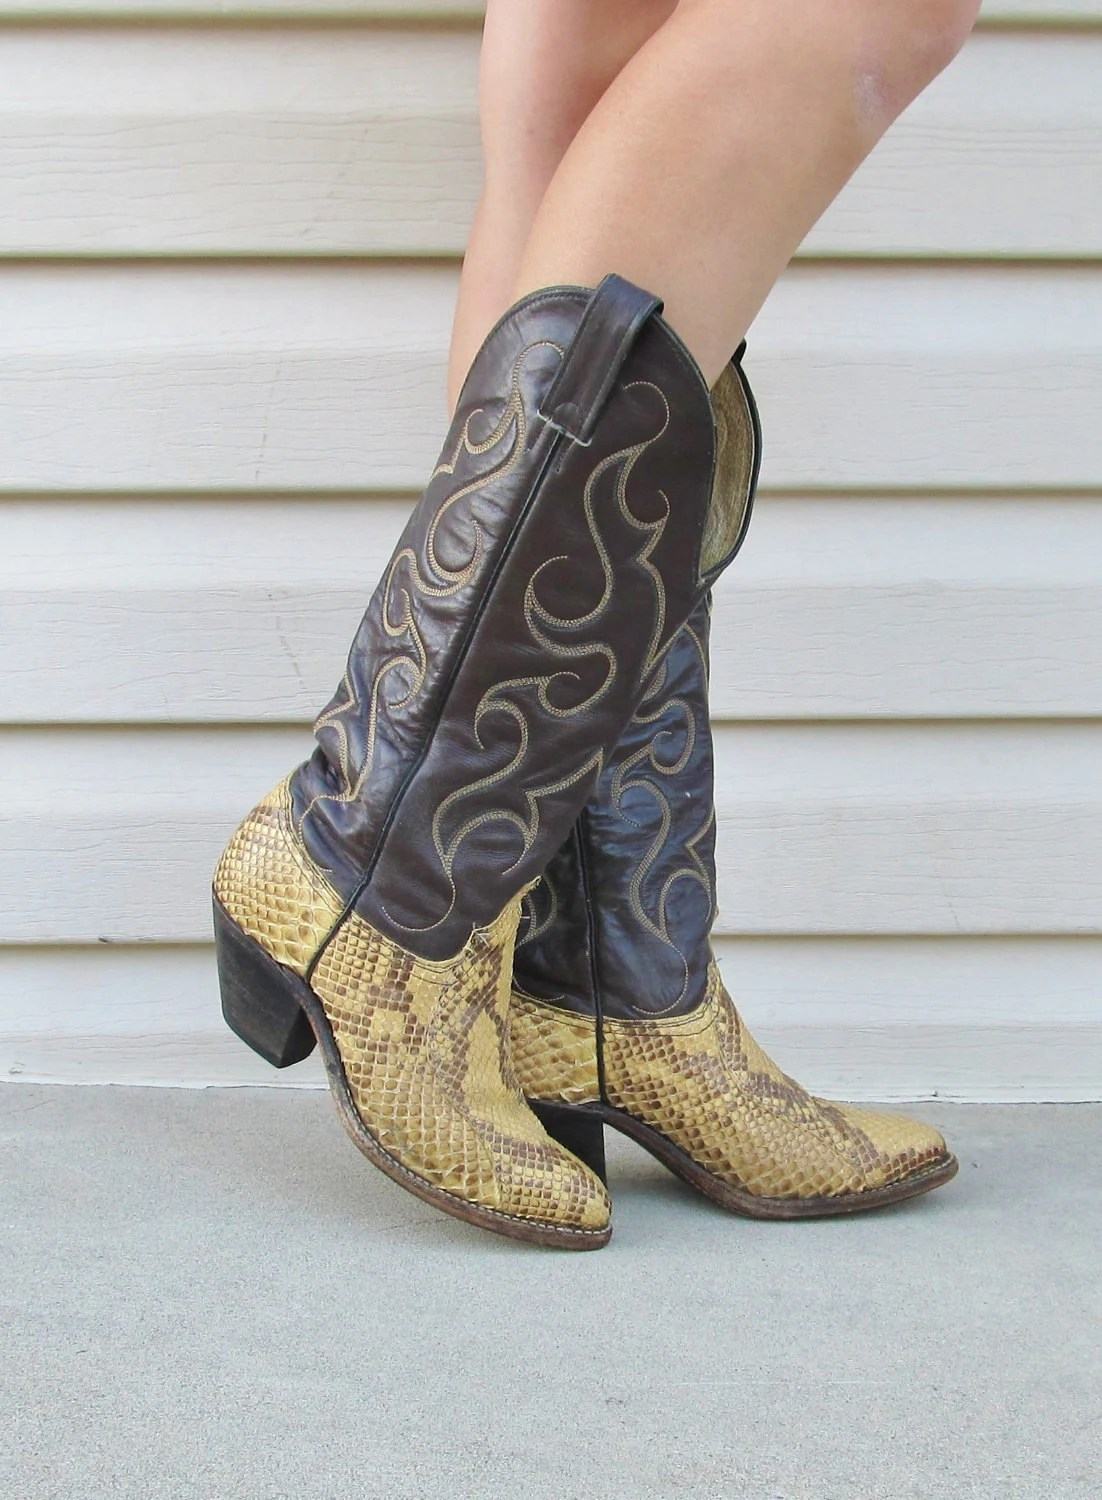 Vintage Abilene Snakeskin Boots Size 7 COUNTRY WESTERN